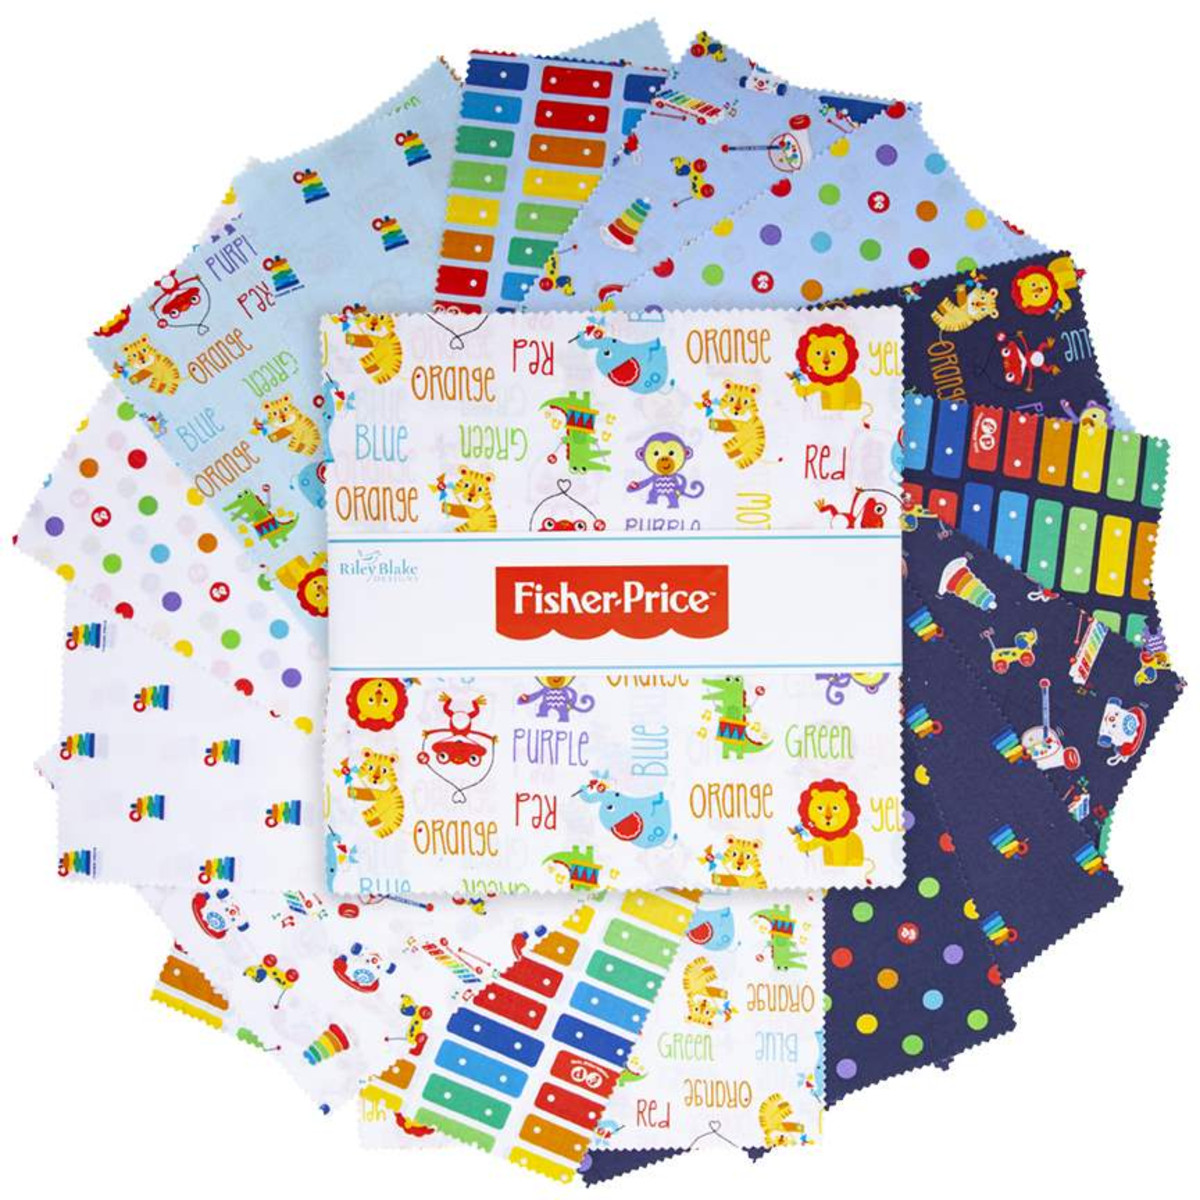 Riley Blake Layer Cake - Fisher Price